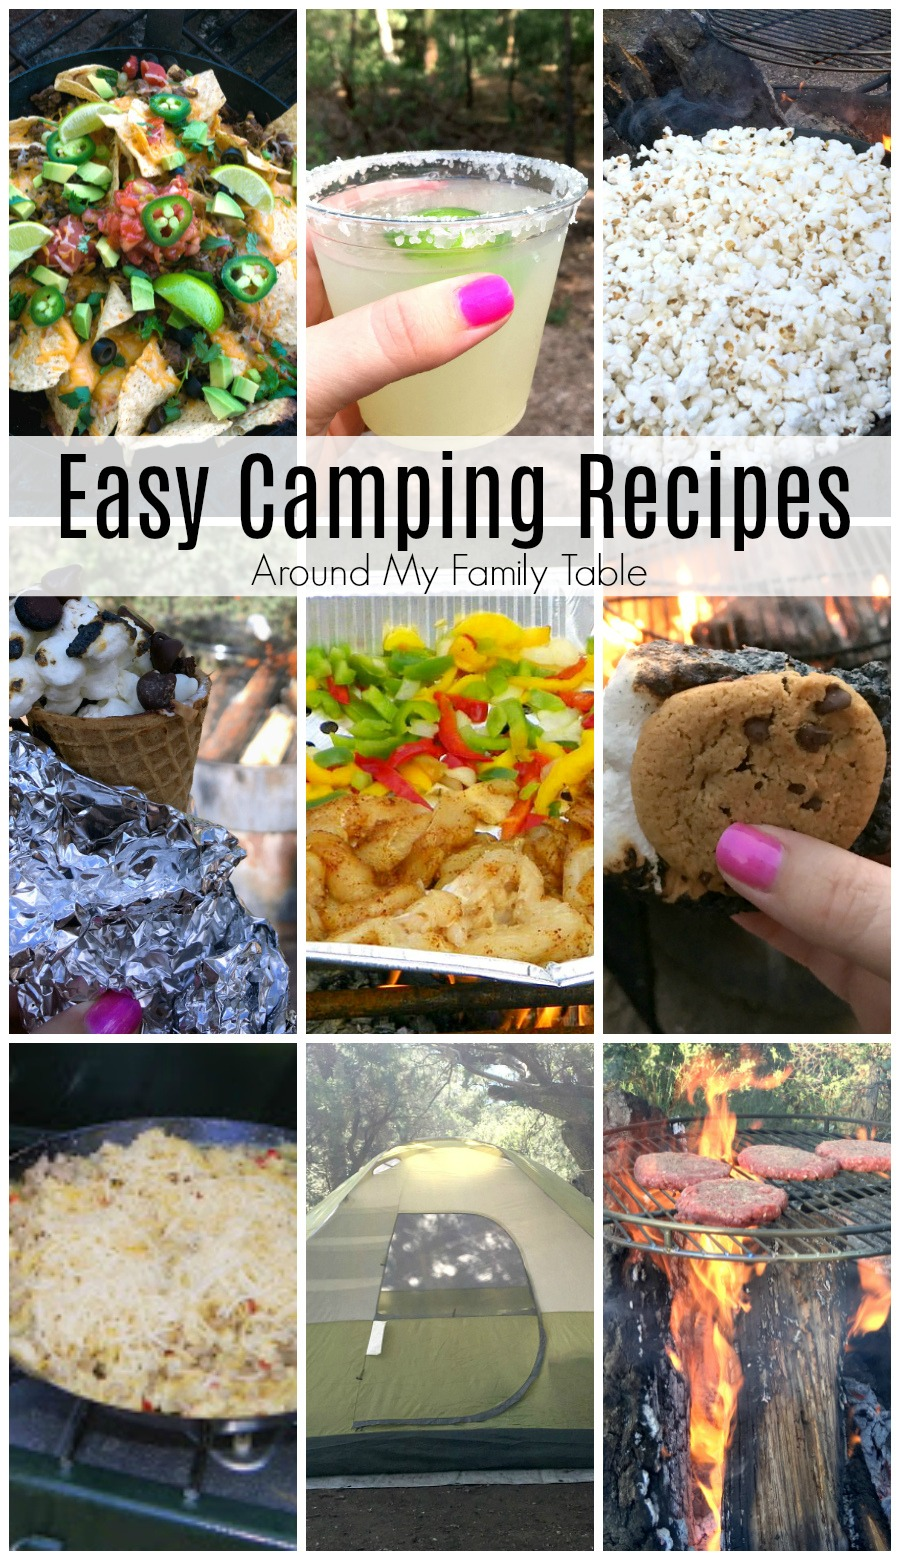 Your next family camping trip will be less stressful and awhole lot tastier with these easy camping recipes. #camping #campingrecipes #outdoorcooking via @slingmama